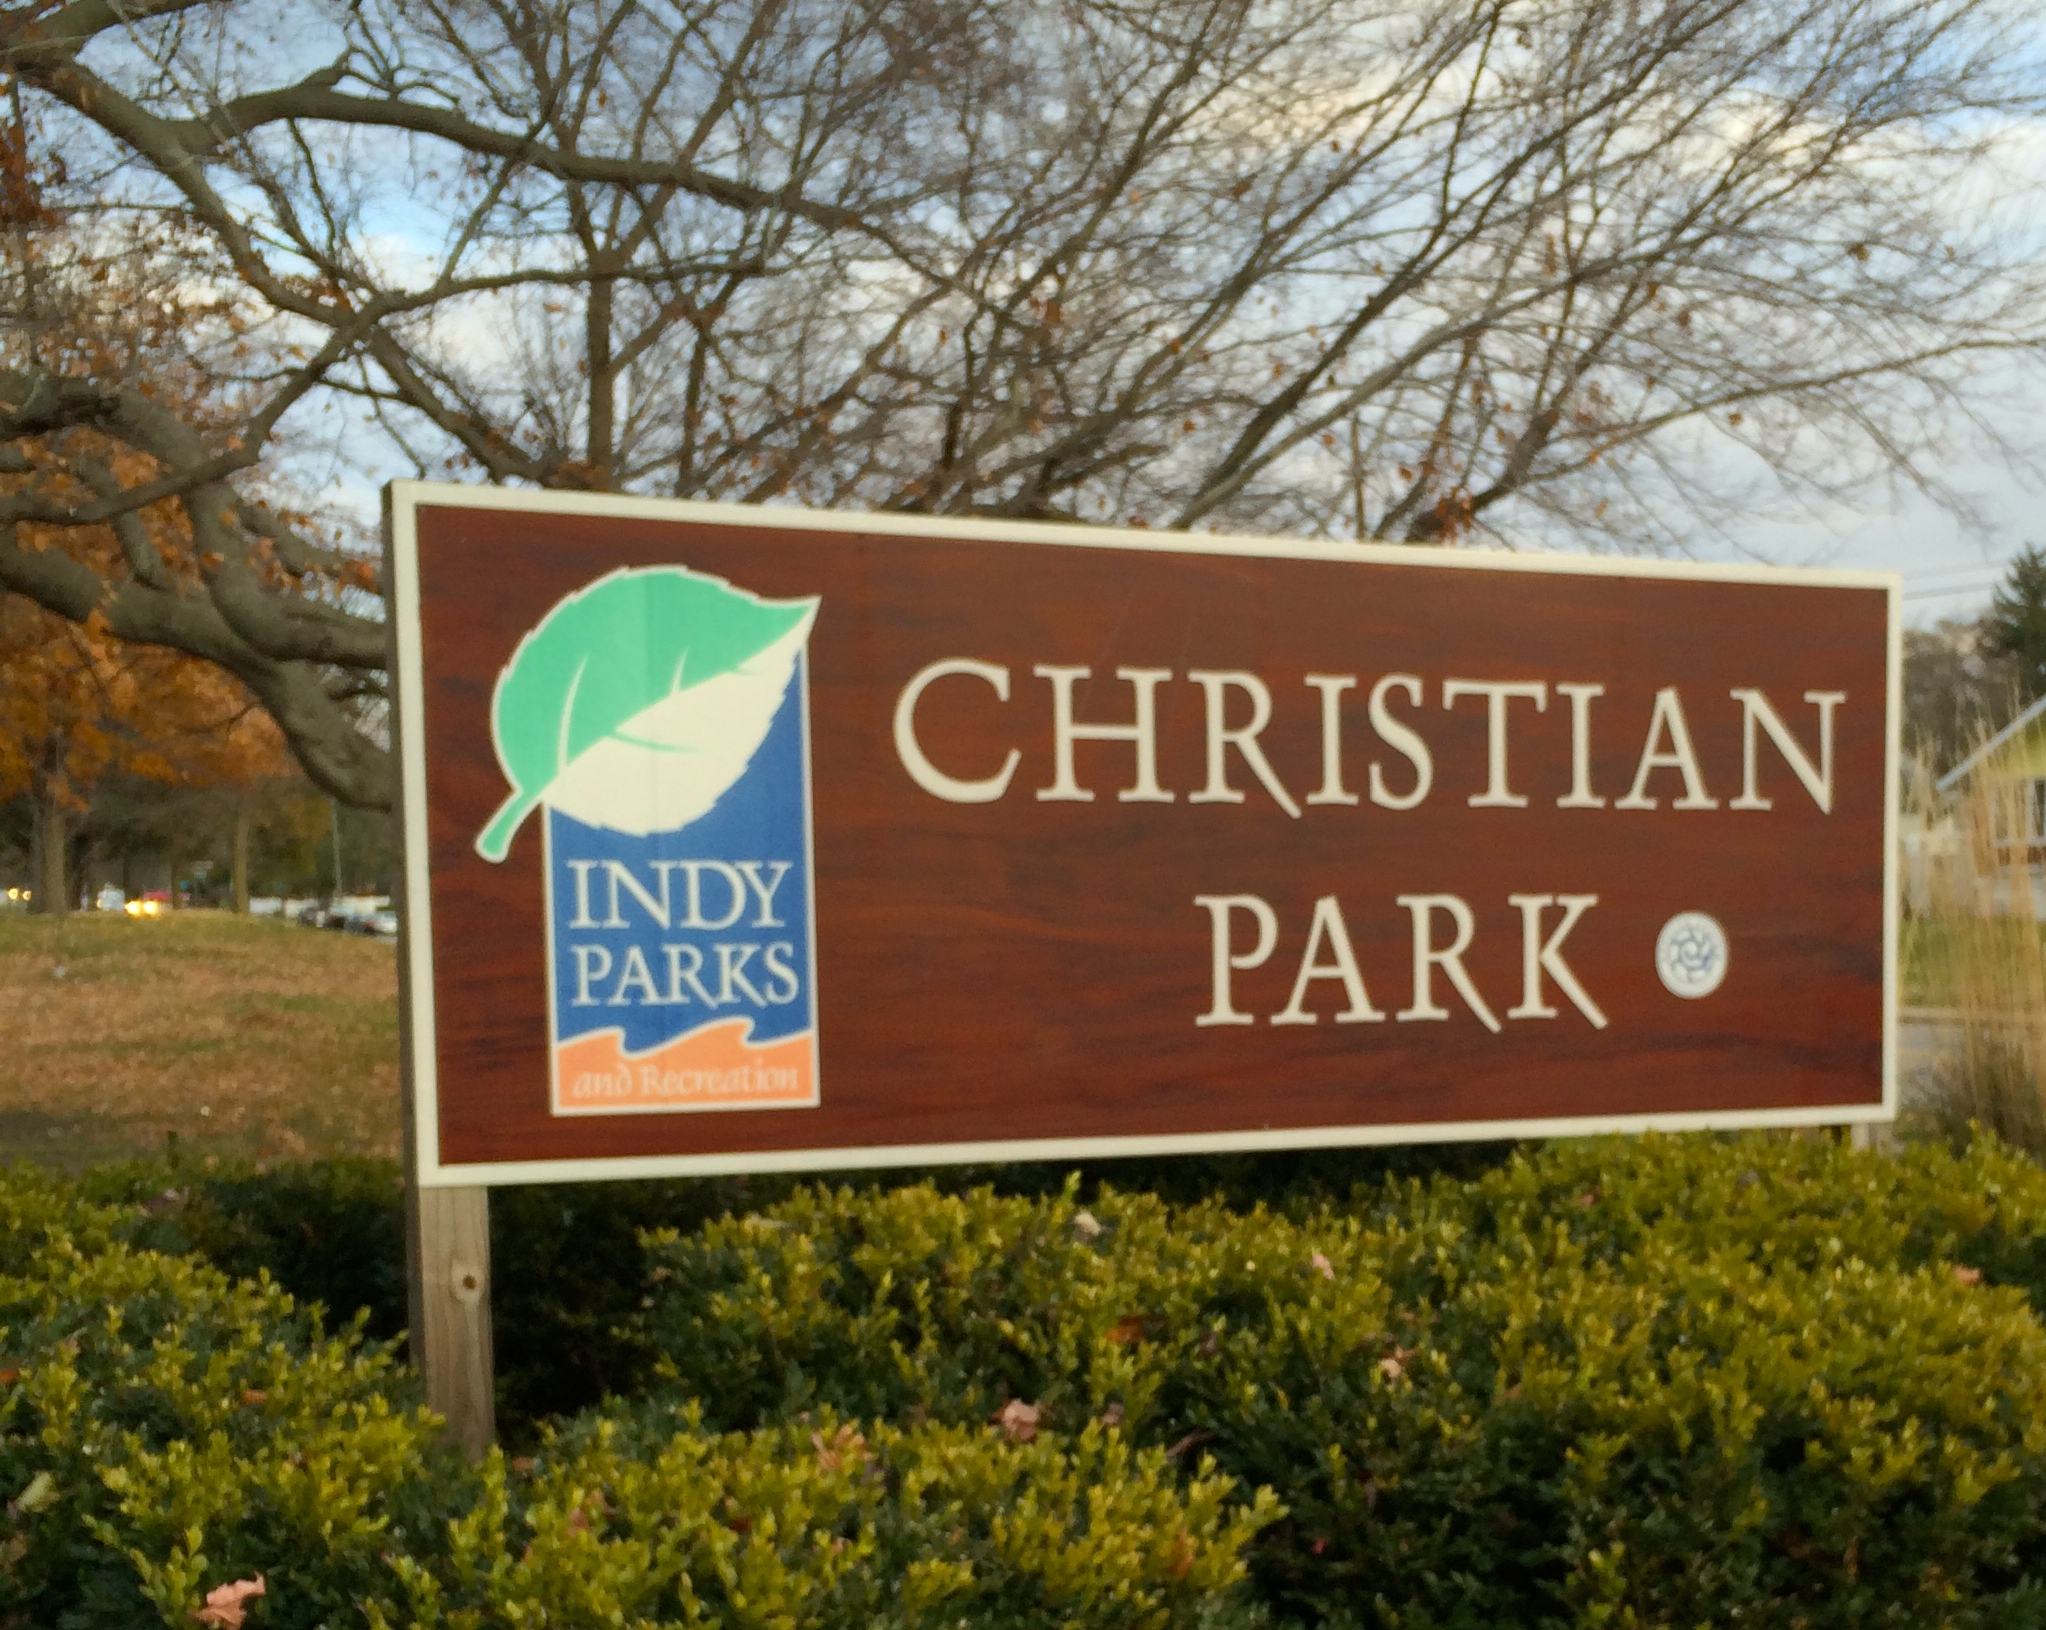 In The Park: Christian Park